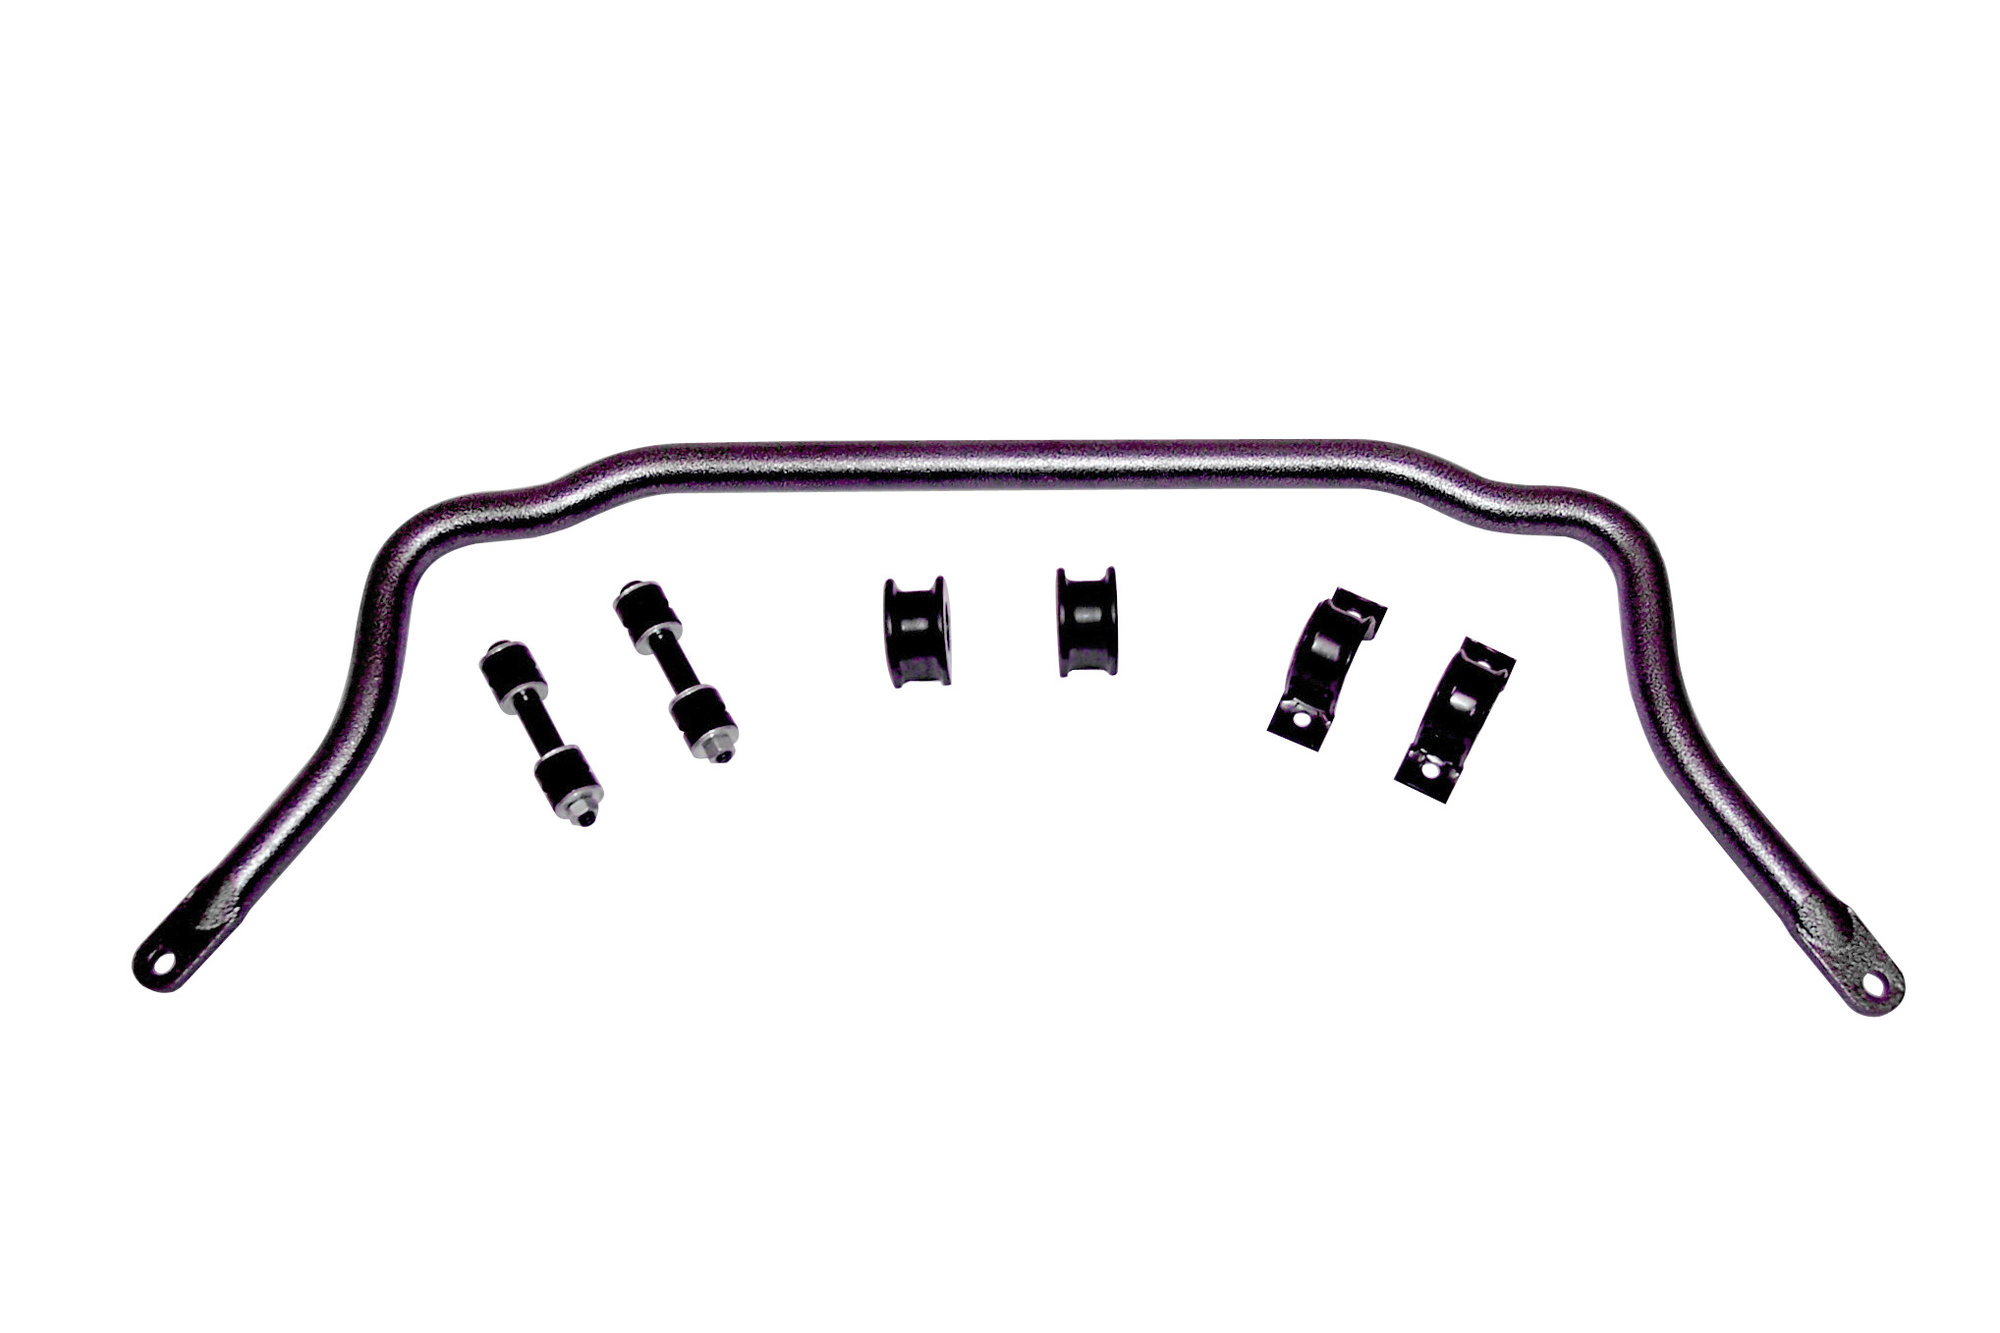 Hellwig Suspension Rear 1 1 8 Sway Bar Kit For 76 85